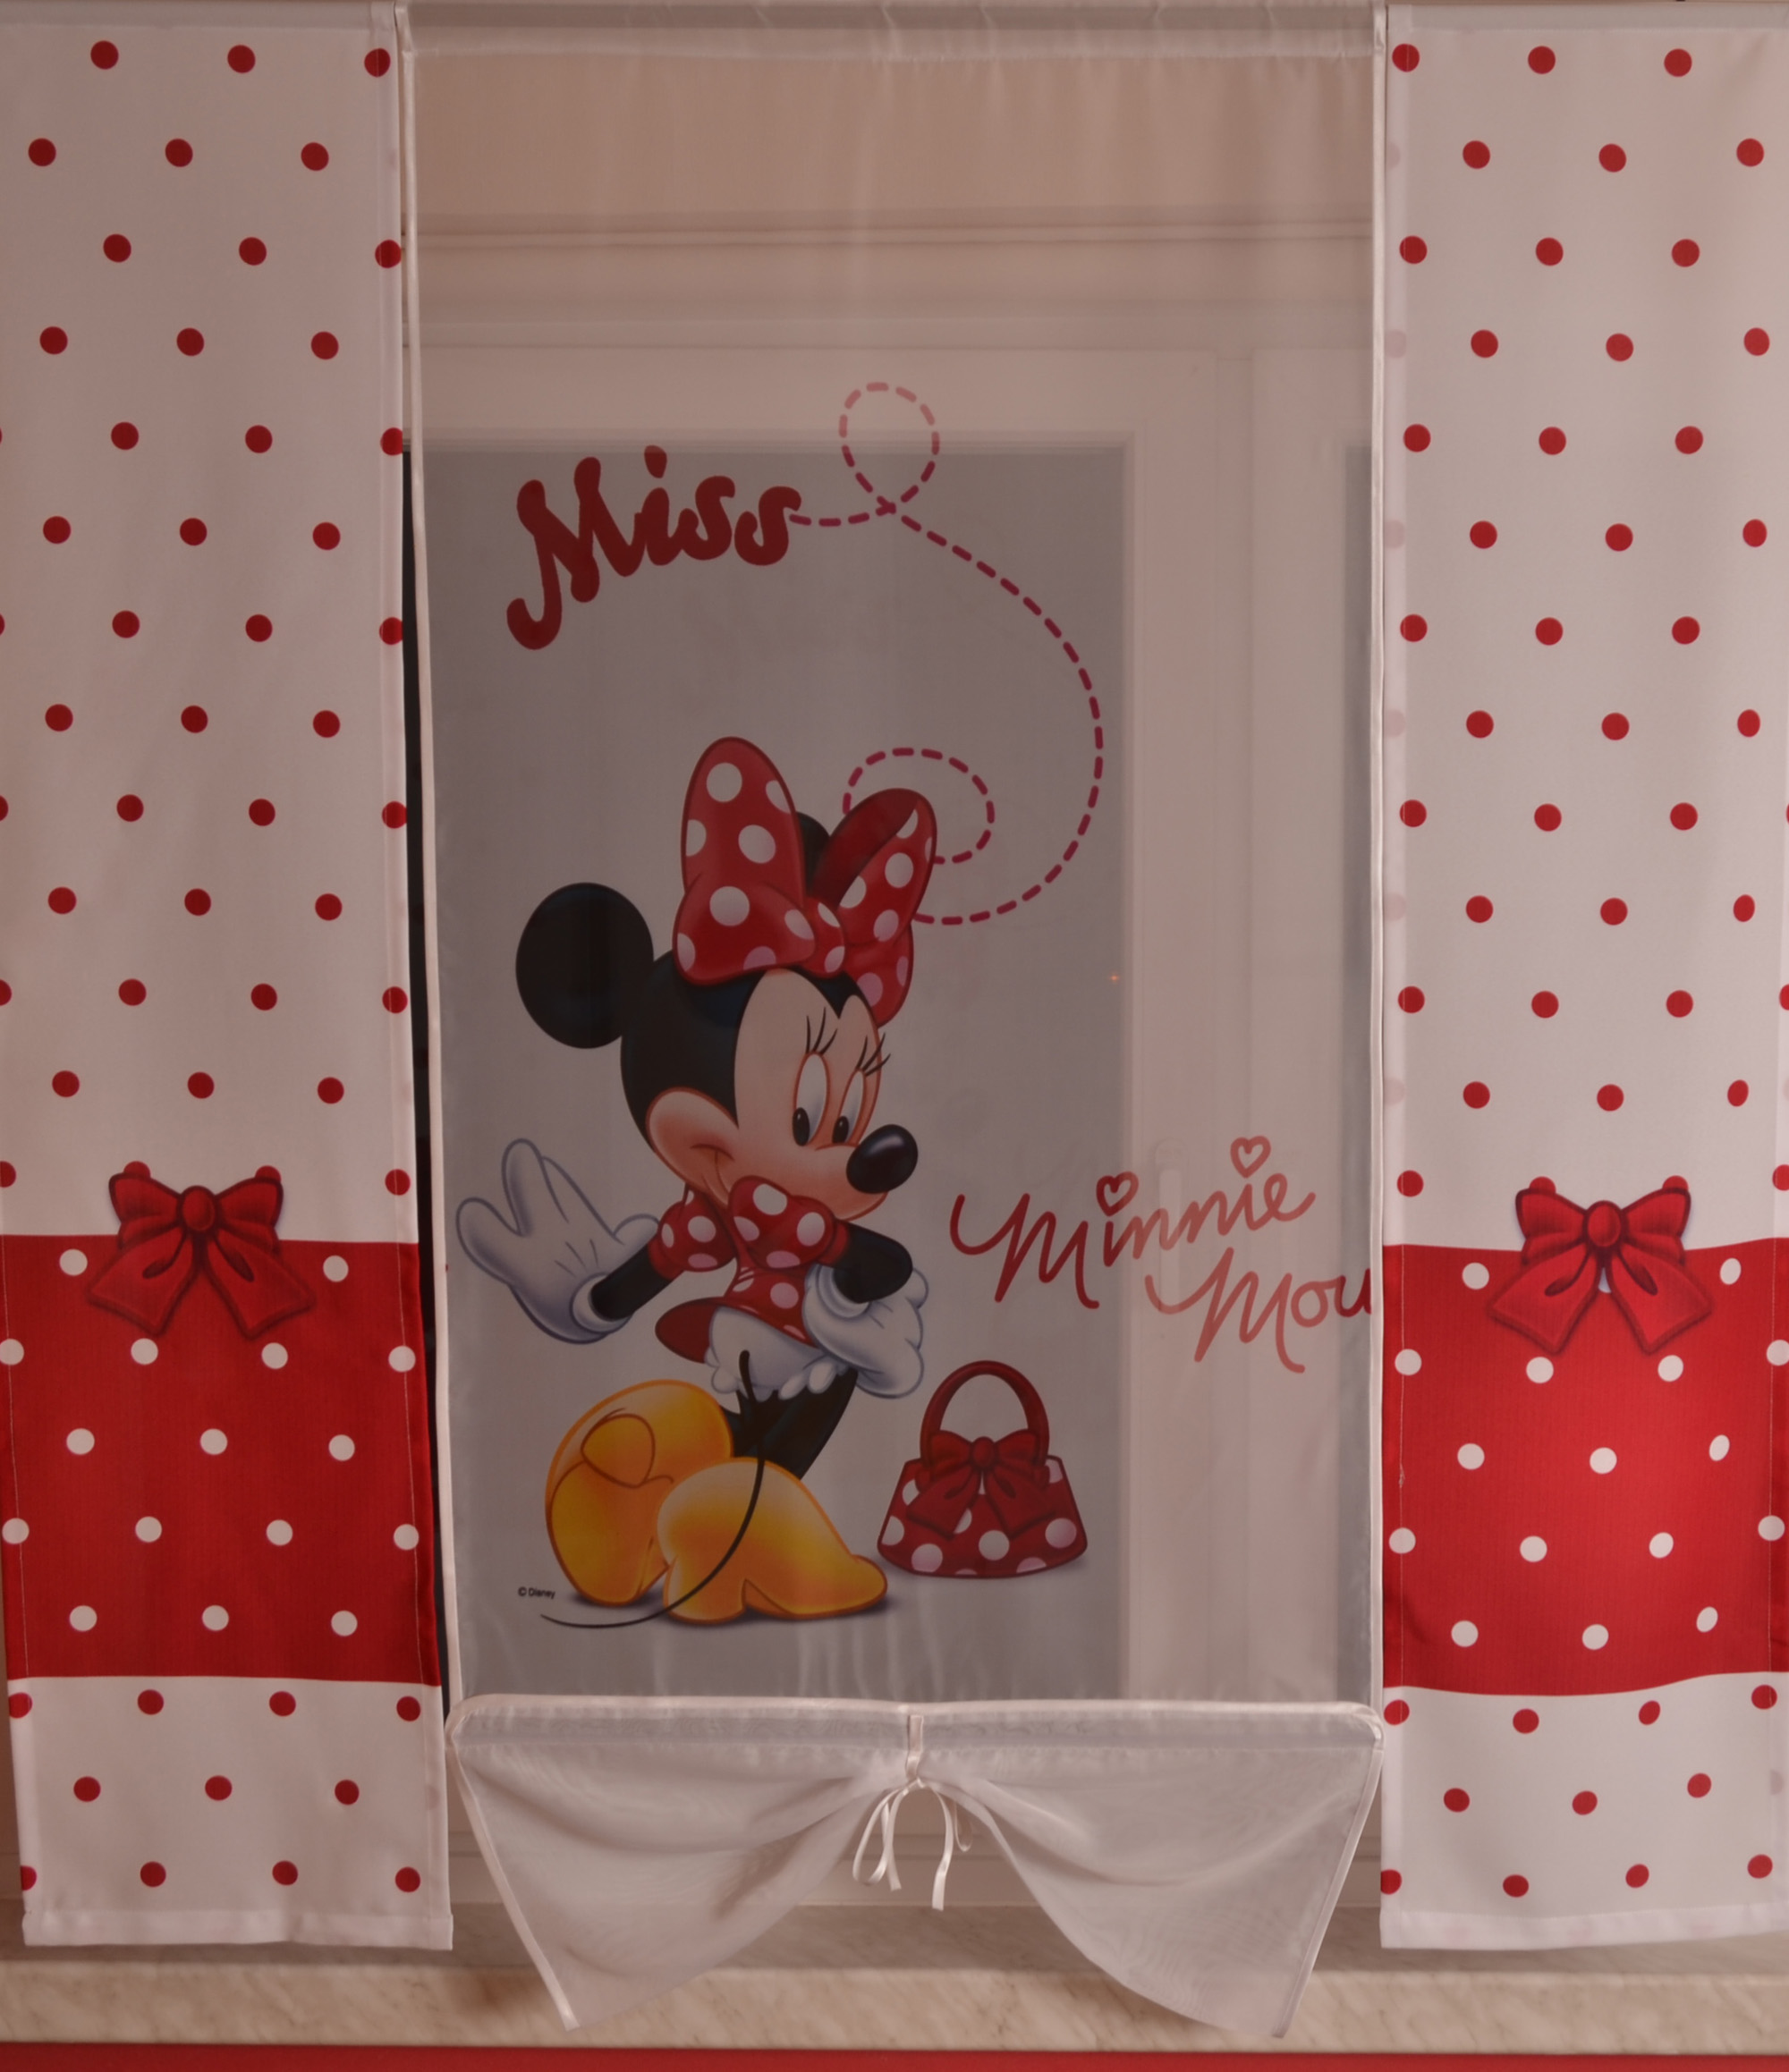 Fototapete Kinderzimmer Minnie Mouse Tapete Minnie Mouse Blumen 10